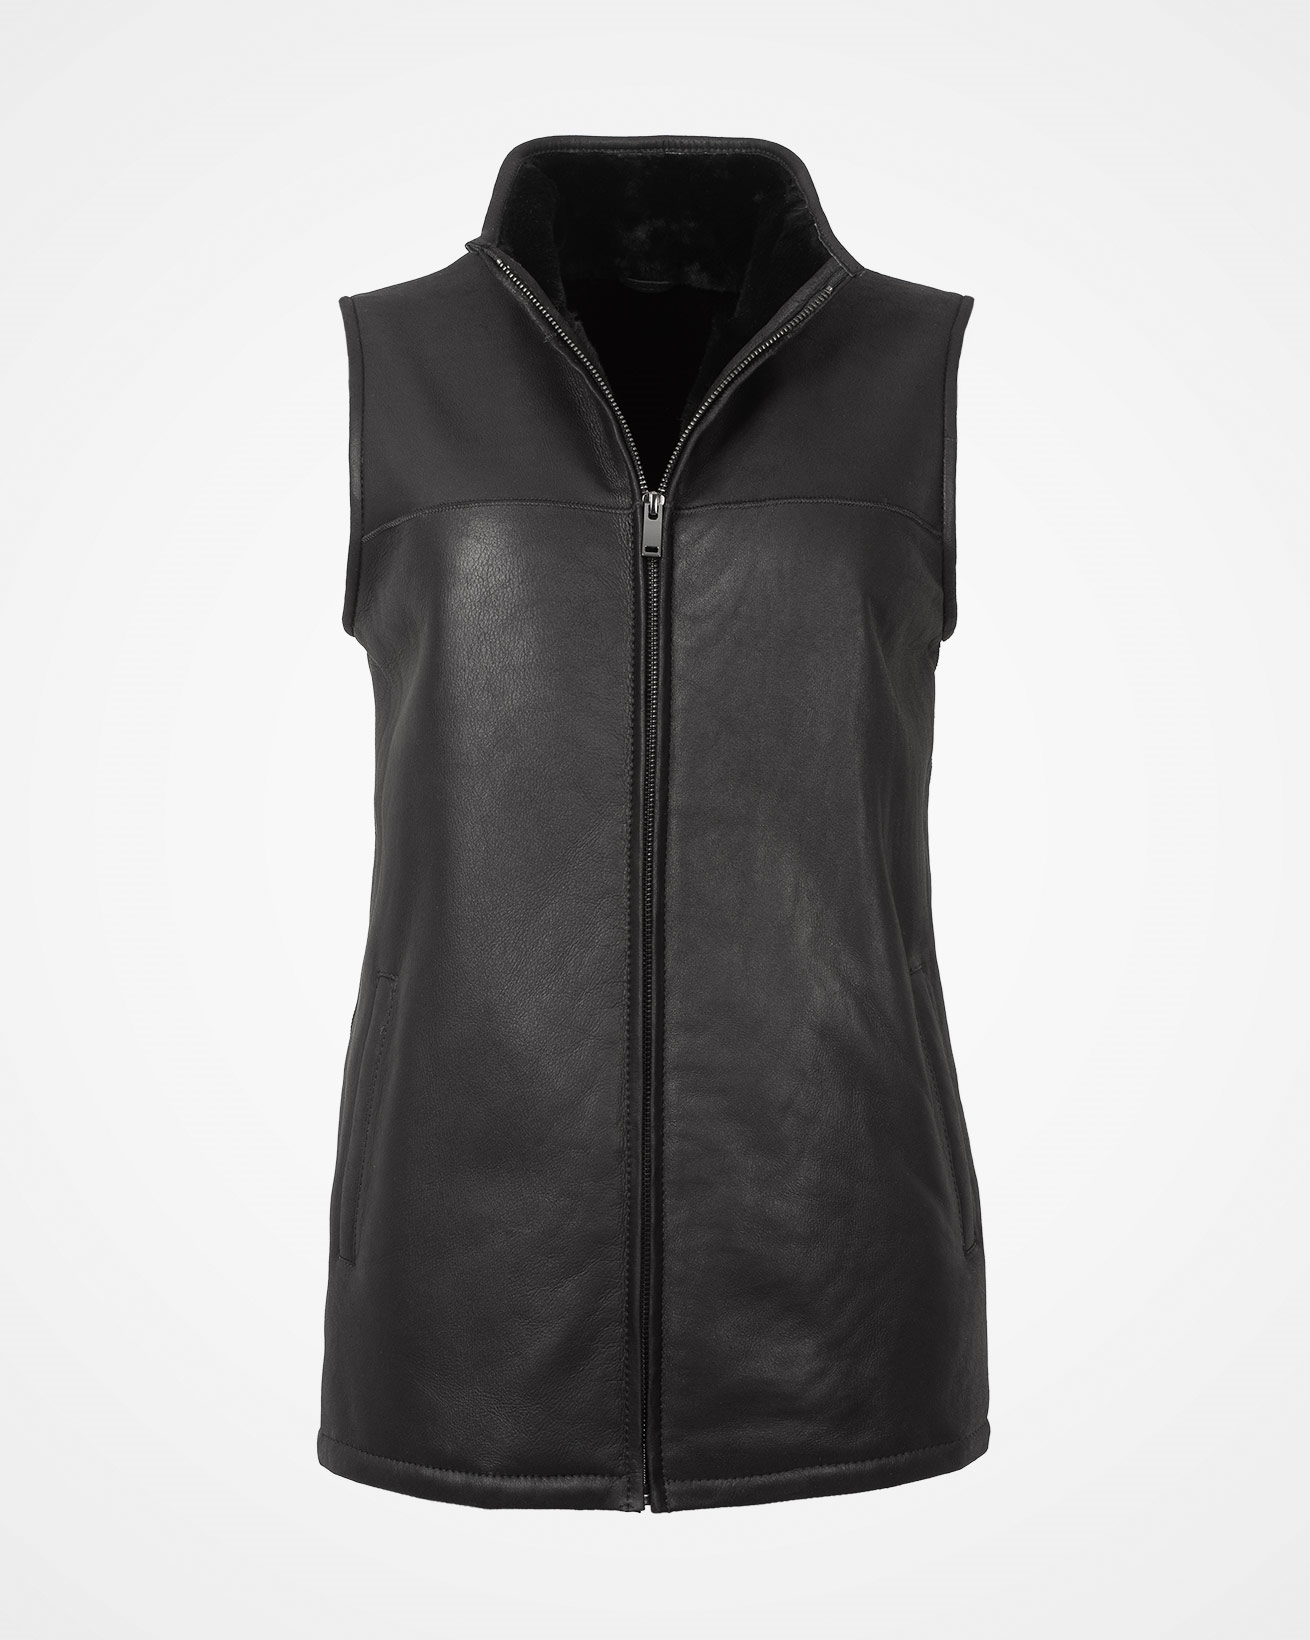 7624_sheepskin-bodywarmer_black_front2.jpg